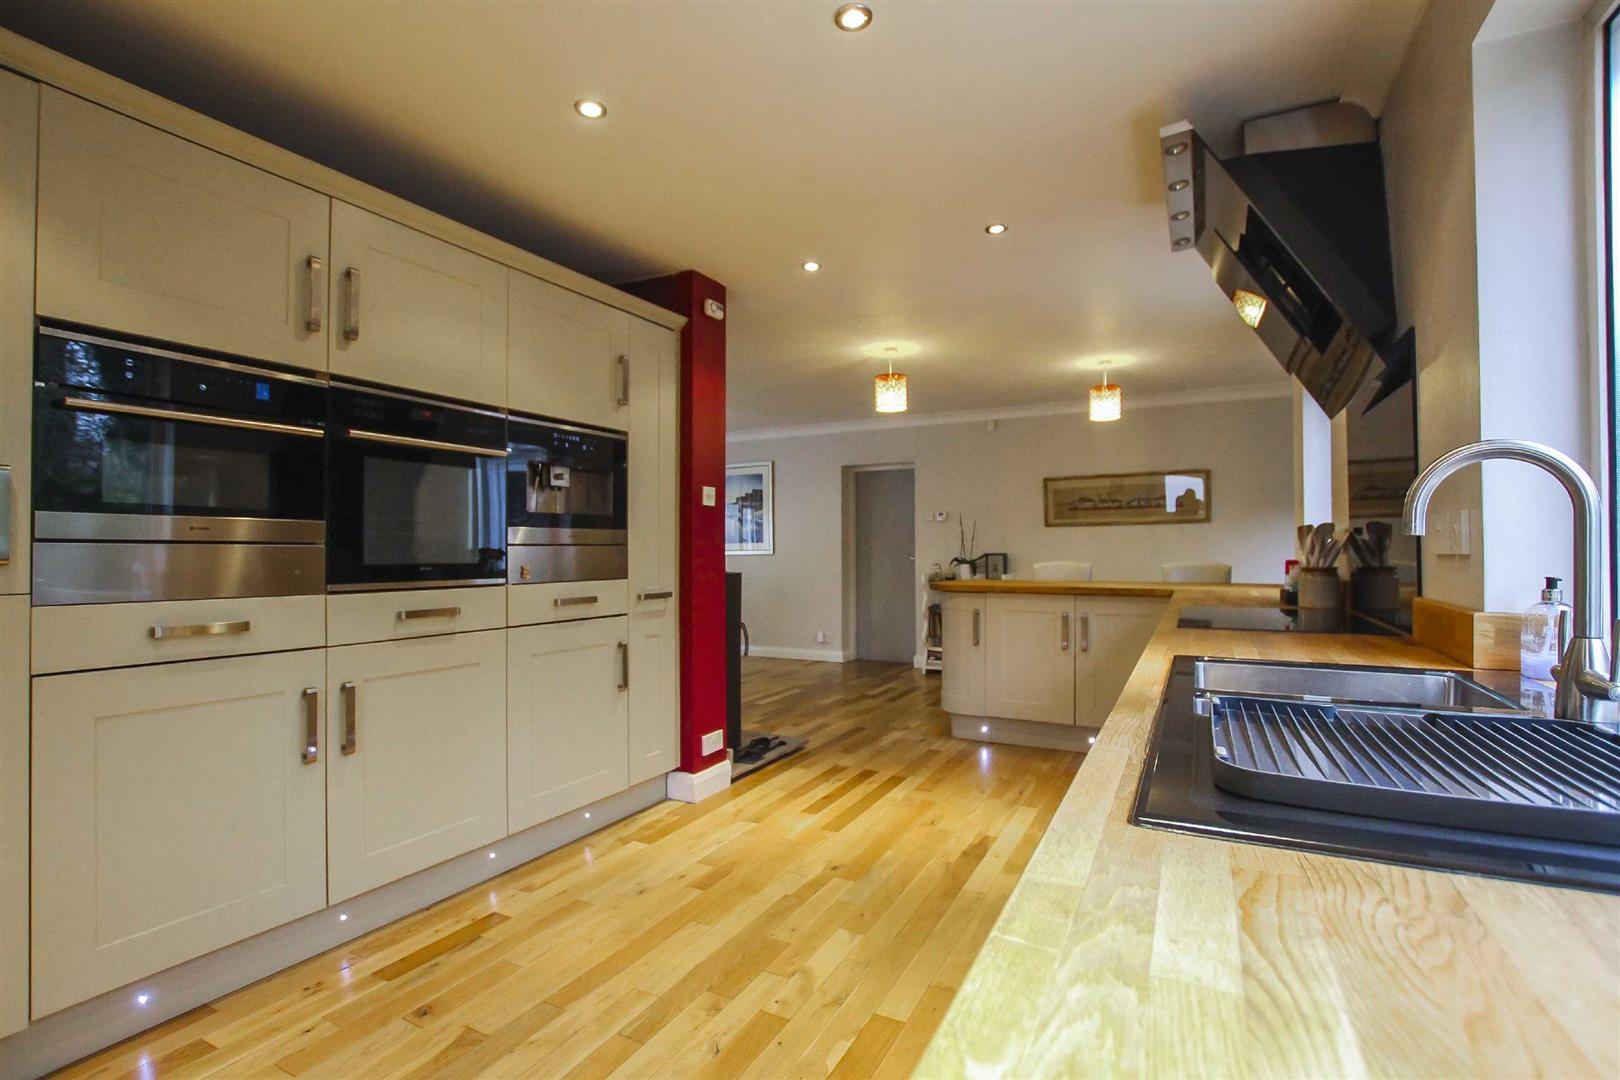 5 Bedroom Detached House For Sale - Image 22